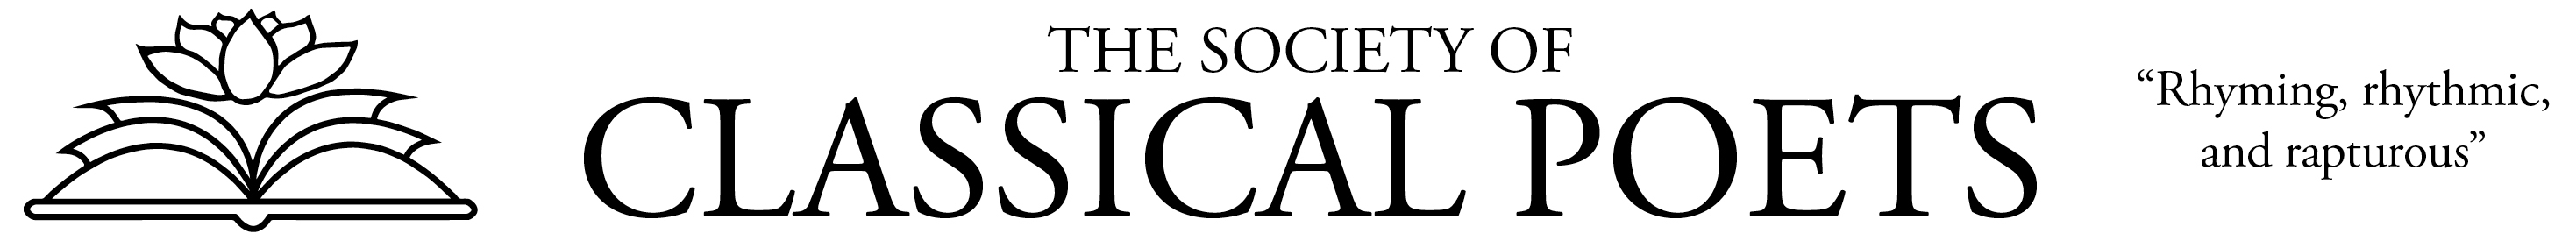 Society of Classical Poets logo